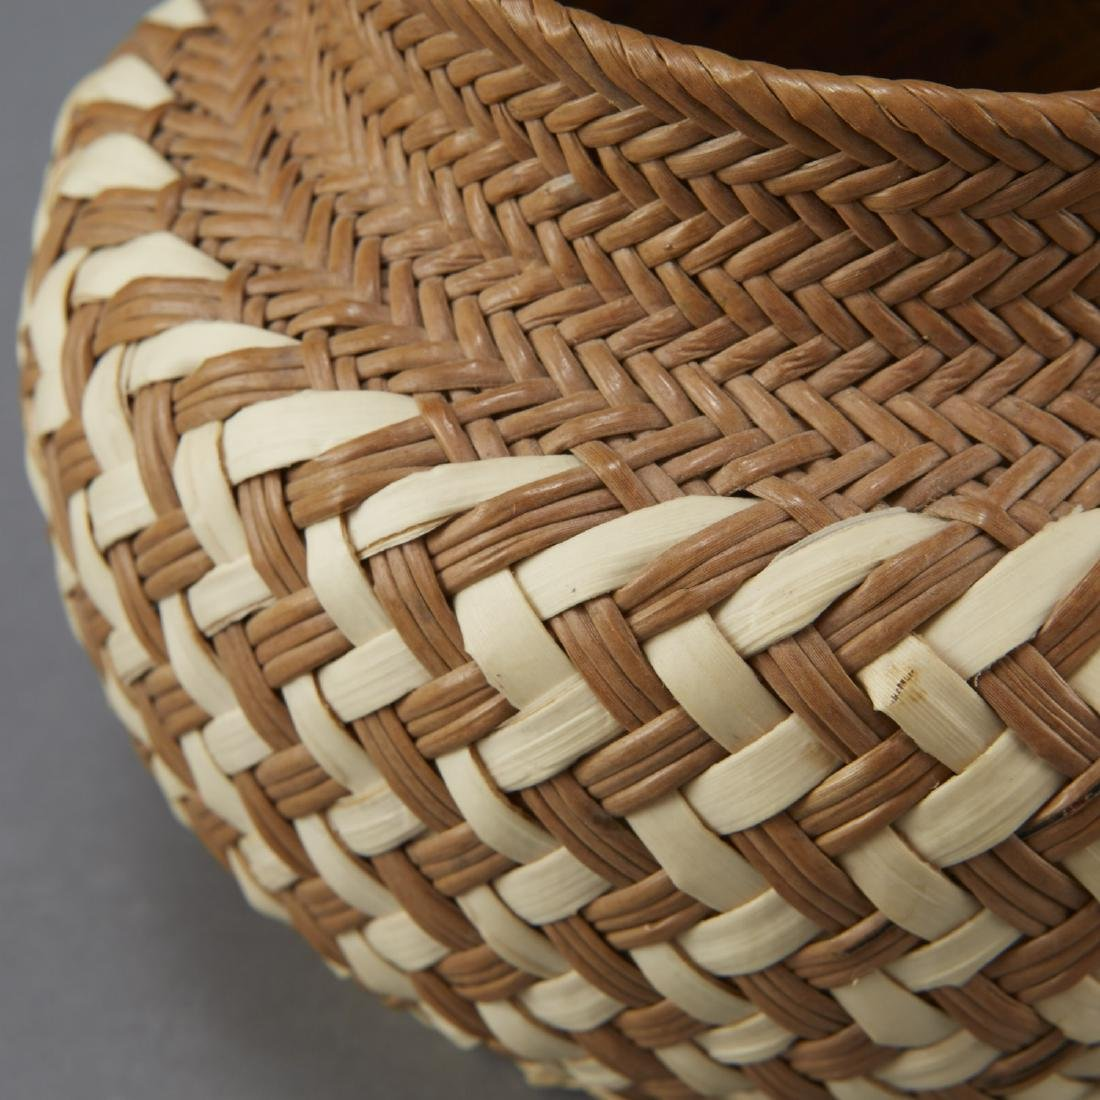 Group of 11 Native American Woven Objects - 7